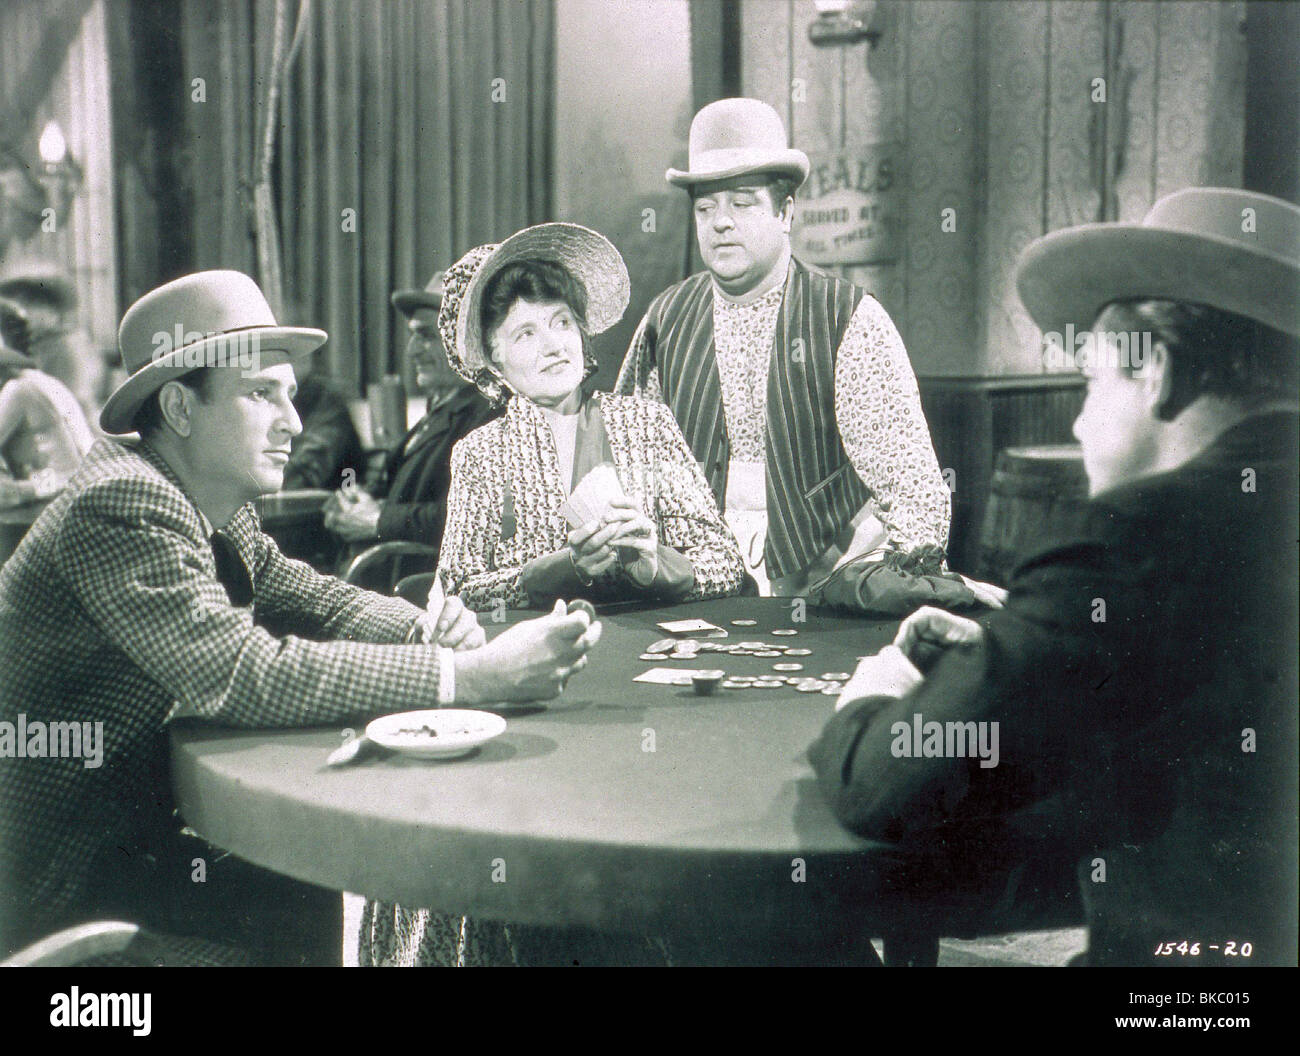 THE WISTFUL WIDOW OF WAGON GAP (1947) BUD ABBOTT, MARJORIE MAIN, LOU COSTELLO WWWG 001 - Stock Image